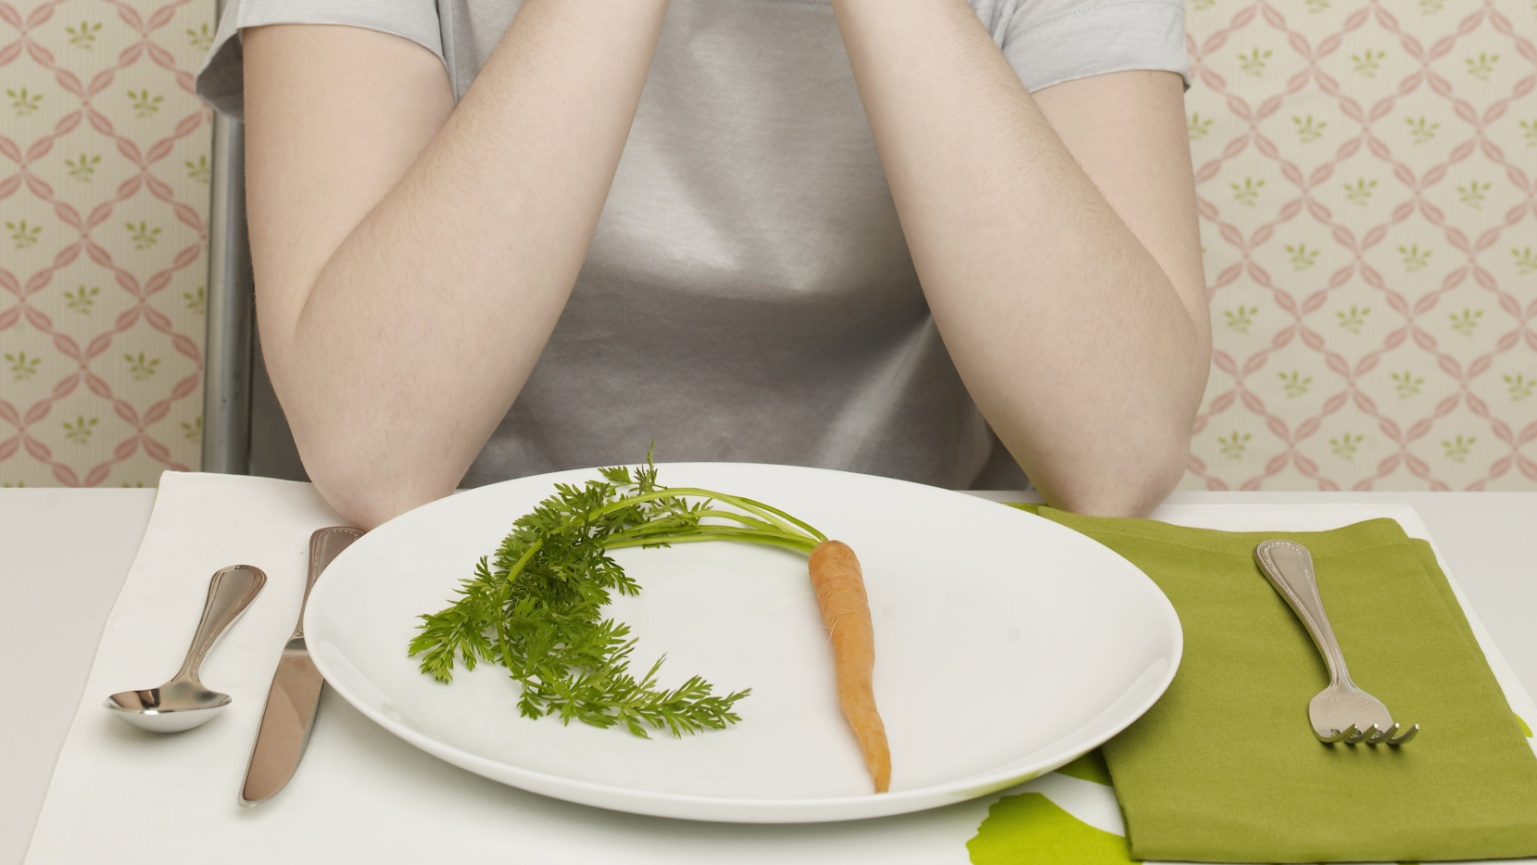 Woman looking at plate with single carrot